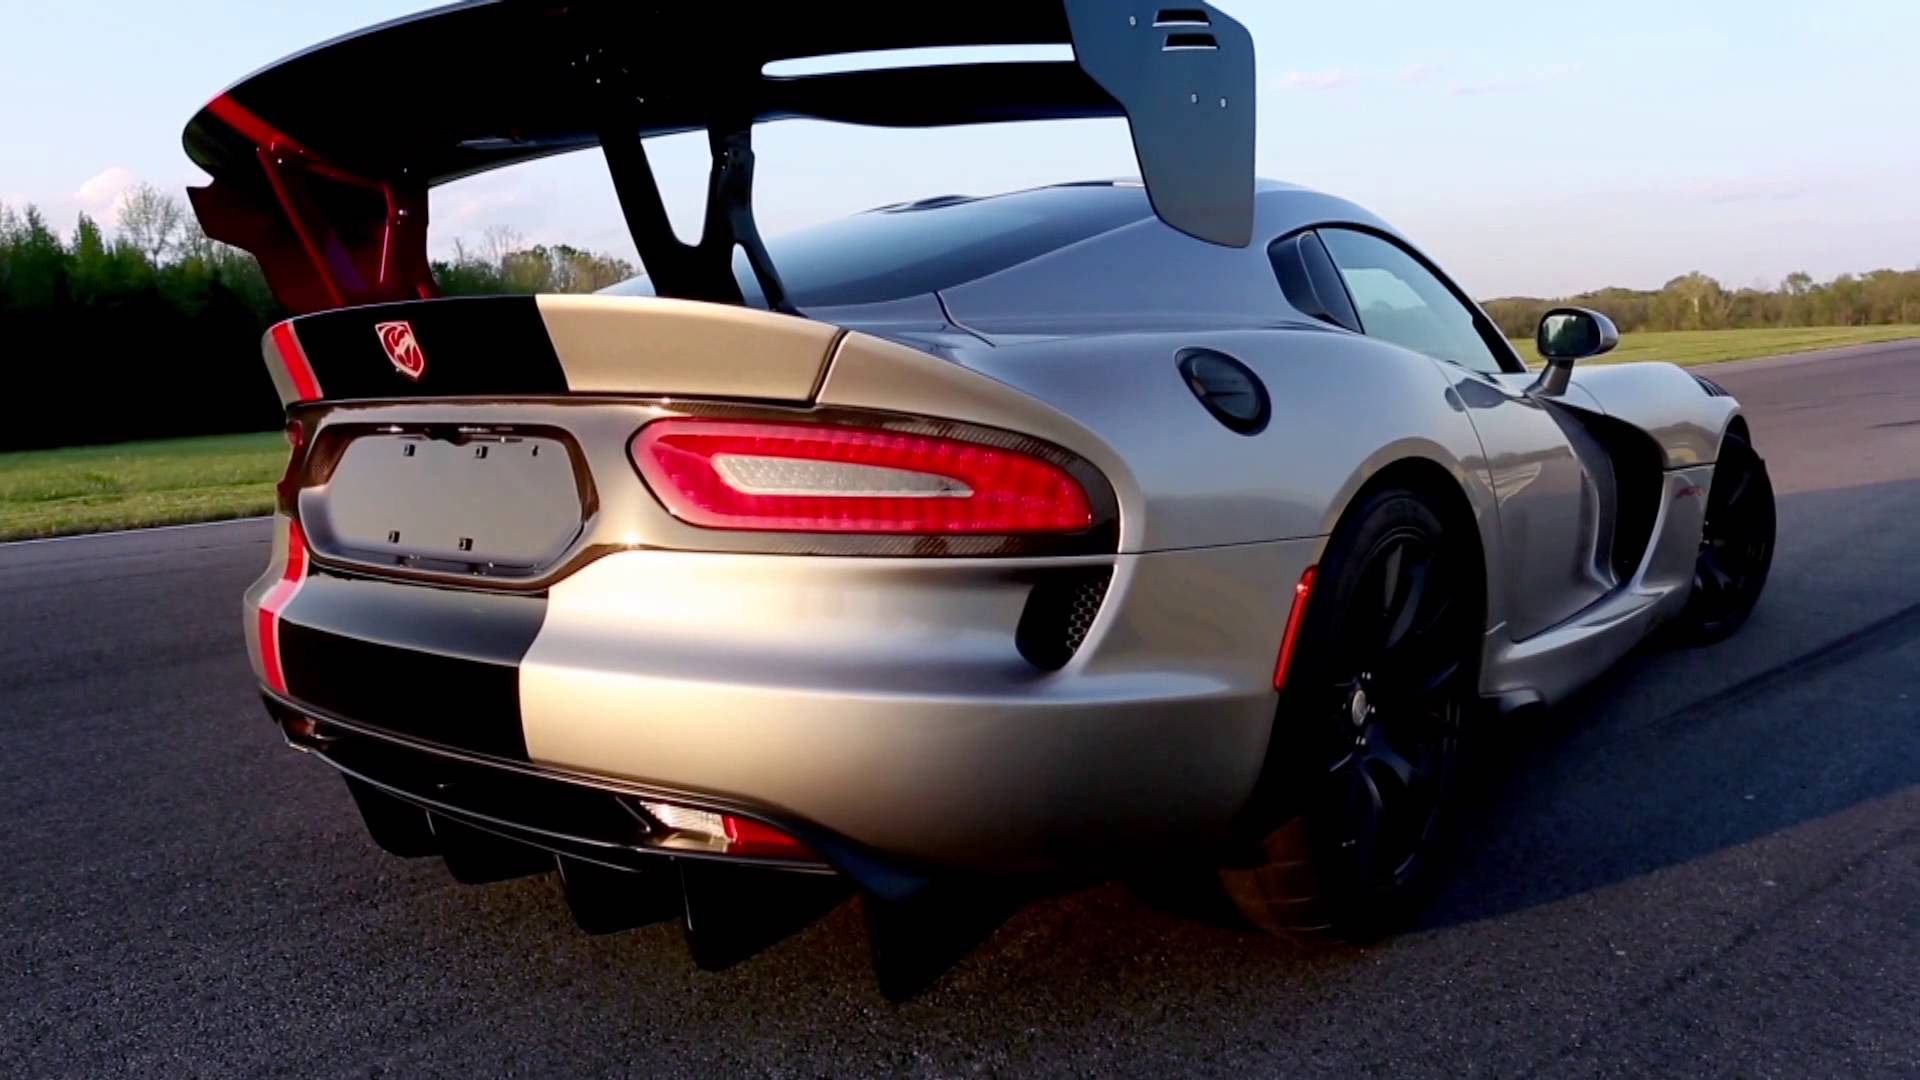 2016 dodge viper acr is undisputed track record king. Black Bedroom Furniture Sets. Home Design Ideas